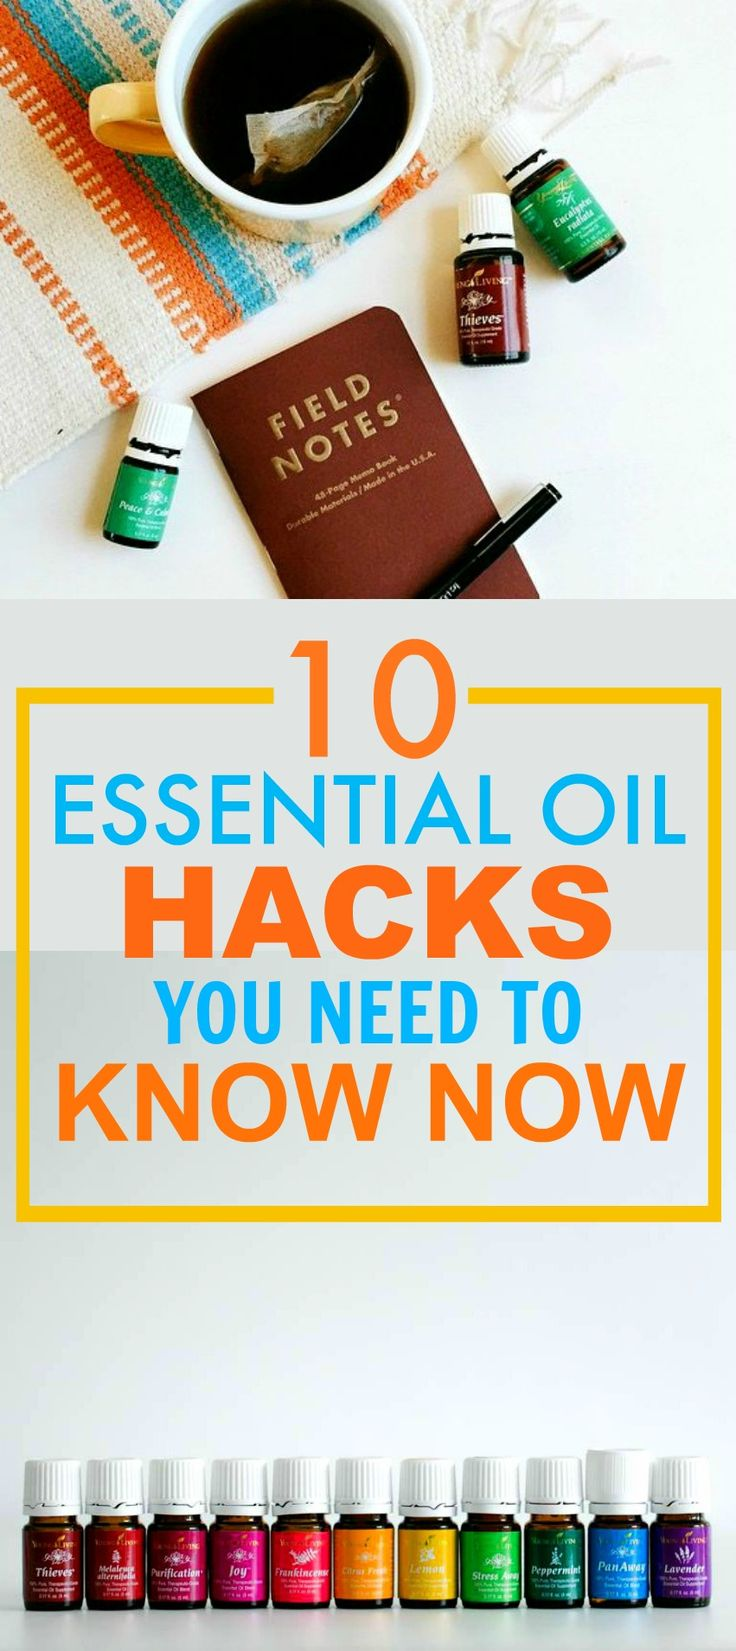 These 10 essential oil hacks that every woman should know are THE BEST! I'm so glad I found this! I've started using Jojoba Oil on my skin and it LOOKS AWESOME already! Definitely pinning for later!